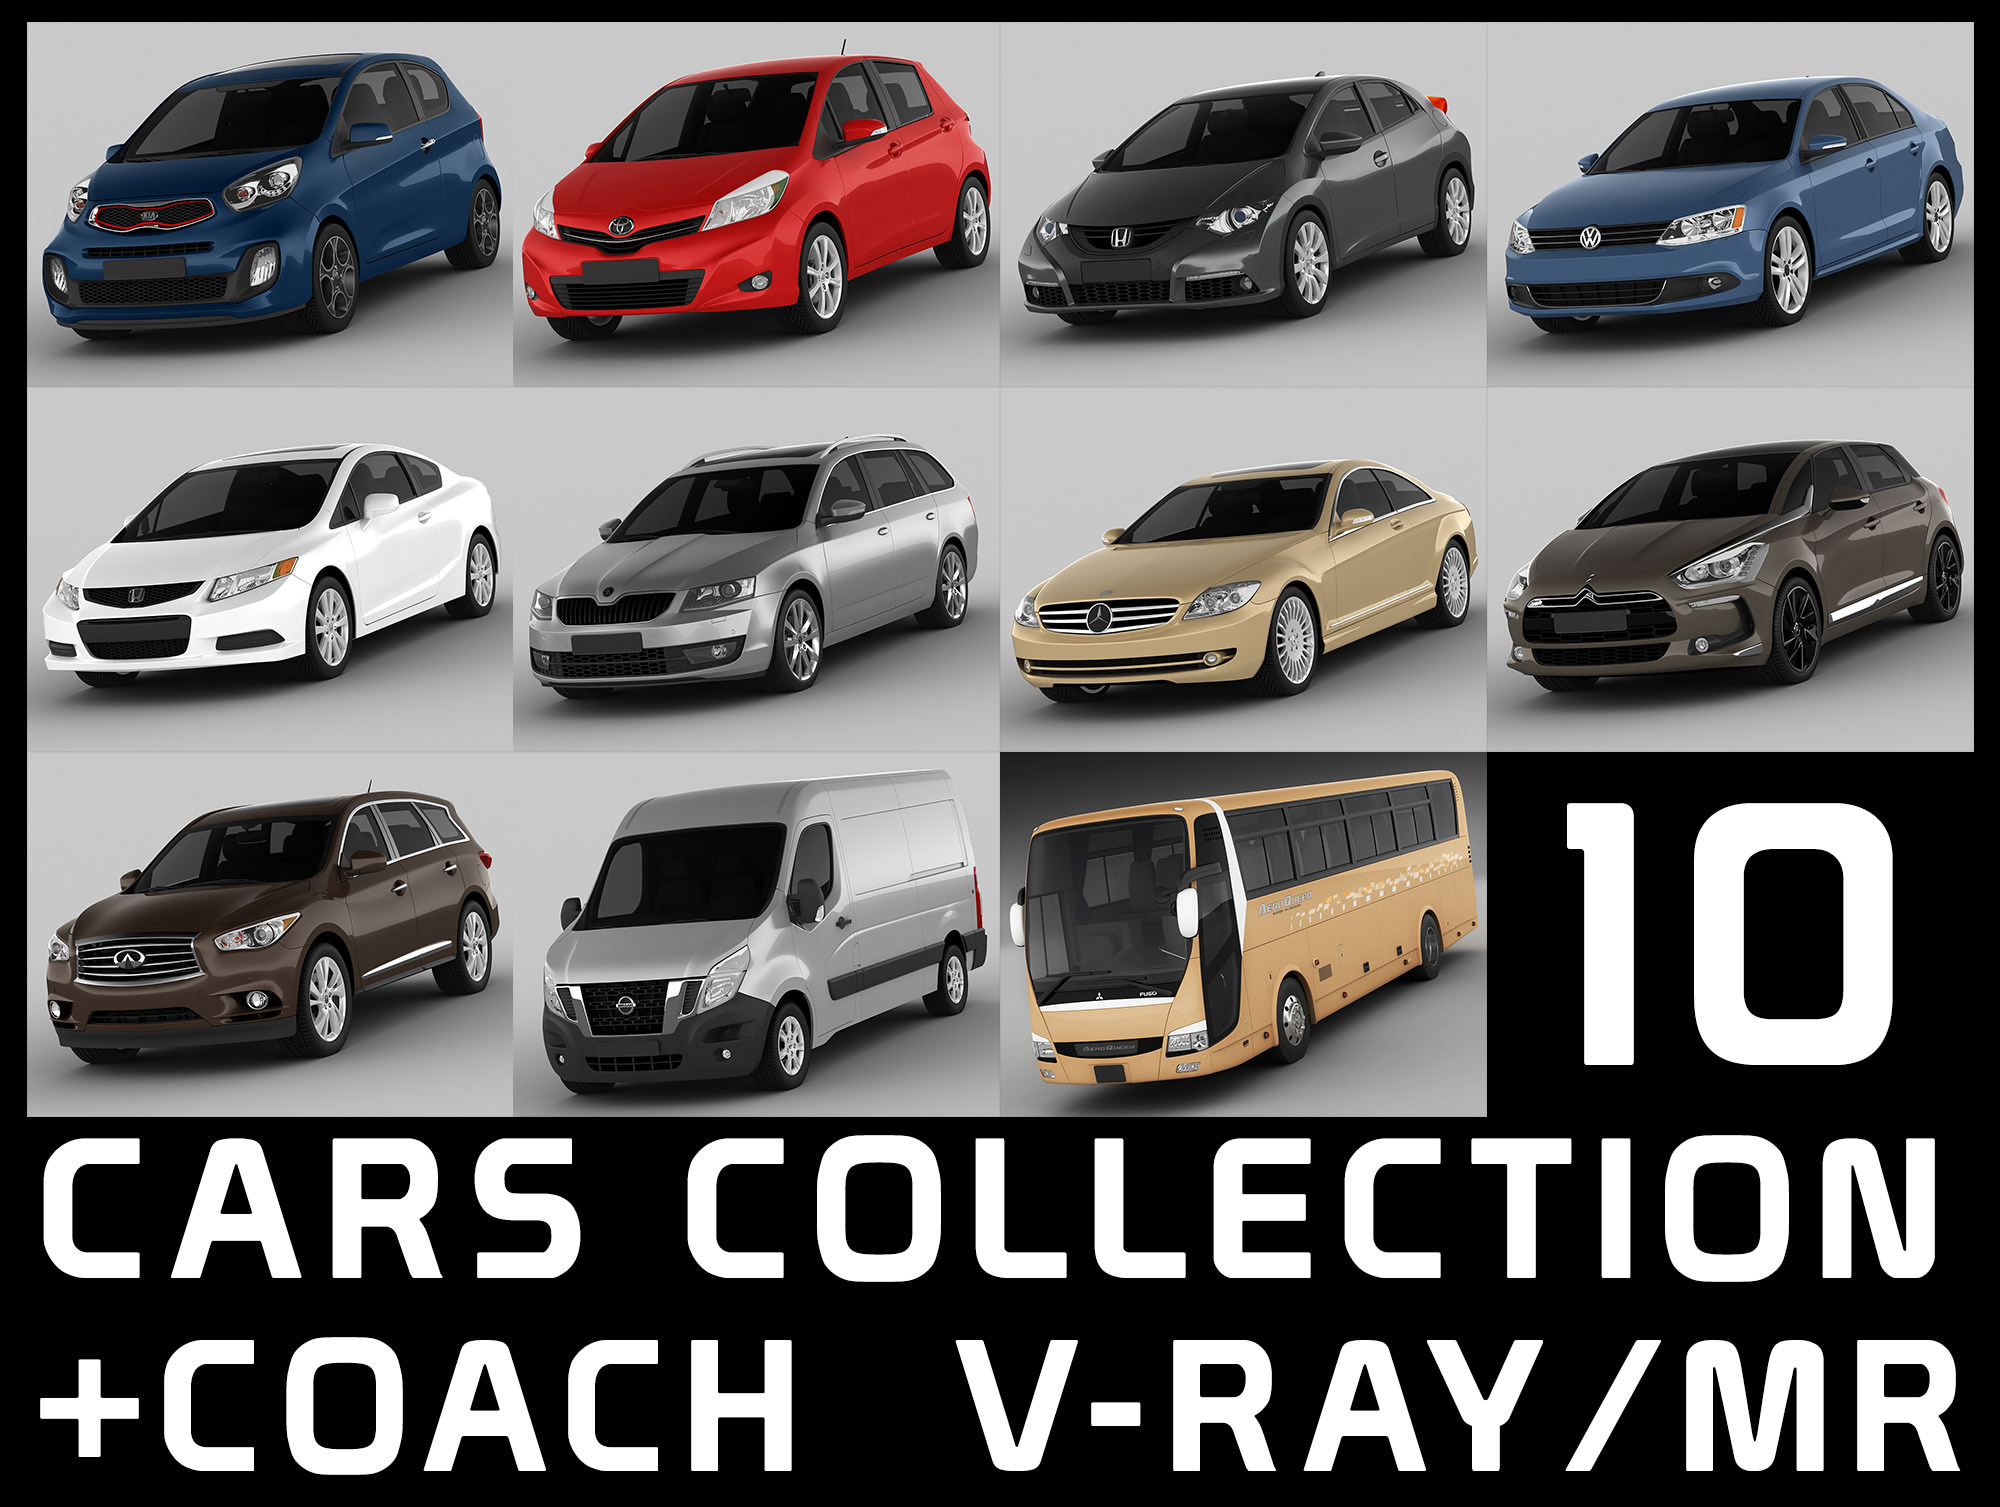 10 cars collection coach